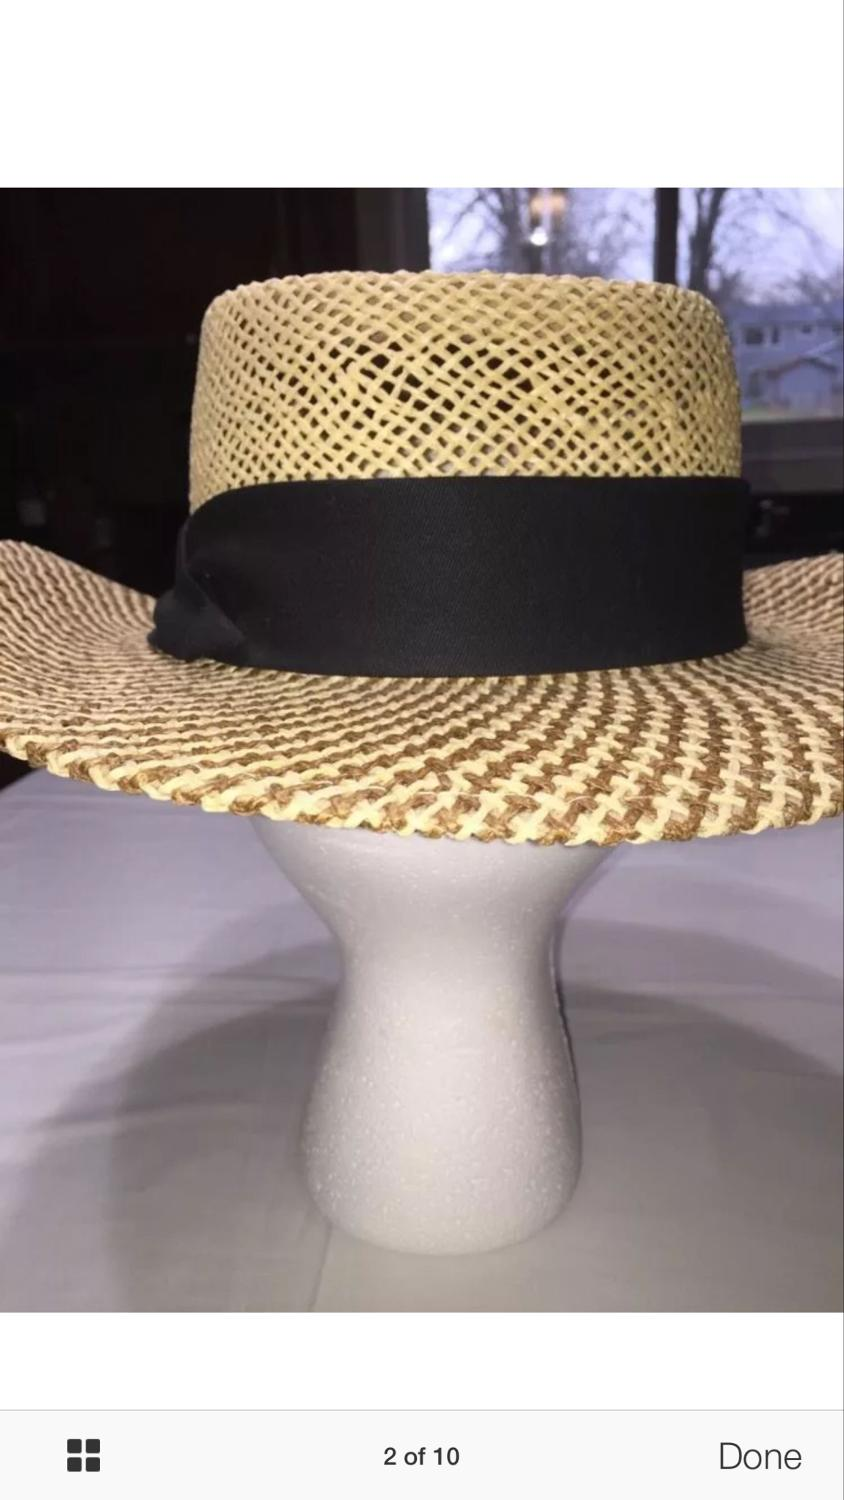 Find more Walter Hagen Men s Panama Style Golf Hat!! for sale at up ... e67257a7be6